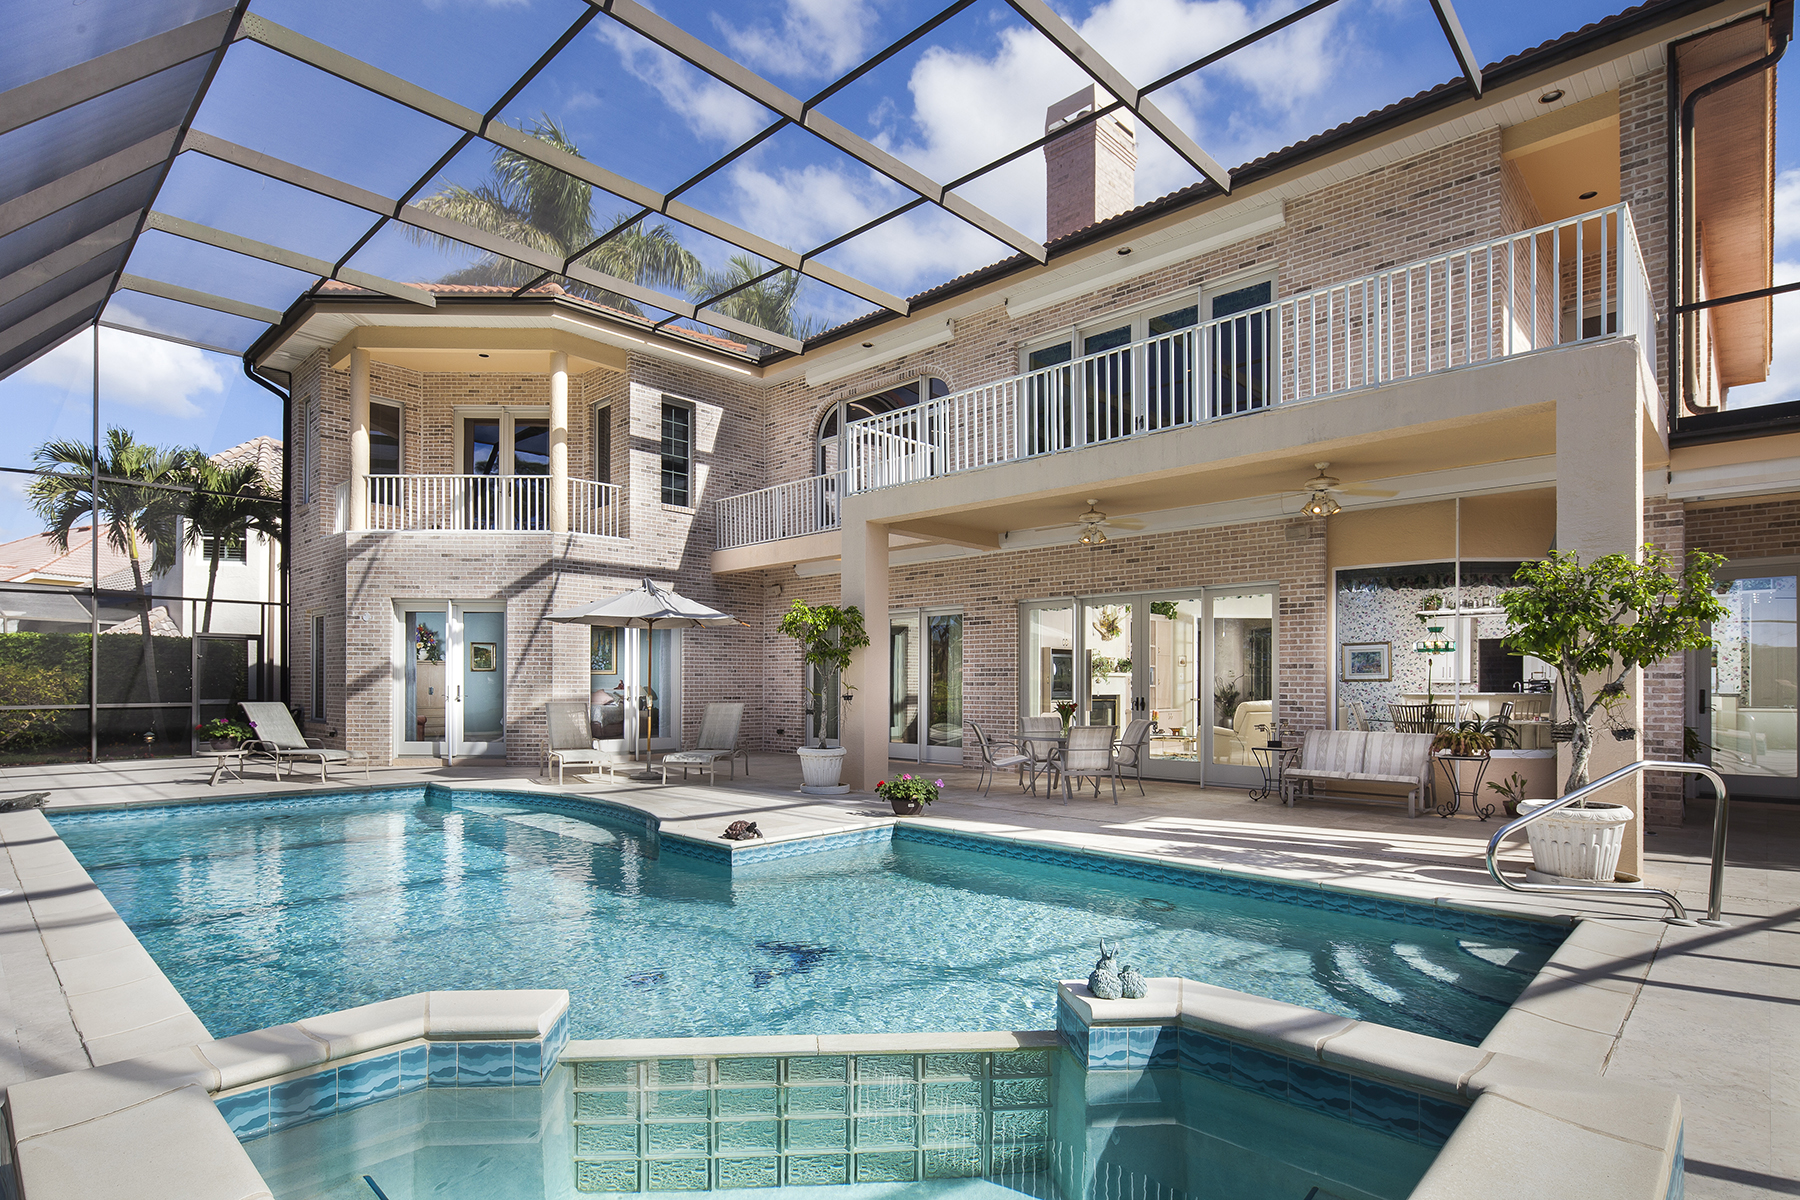 Single Family Home for Sale at PELICAN BAY - BARRINTON 6955 Green Tree Dr, Naples, Florida 34108 United States